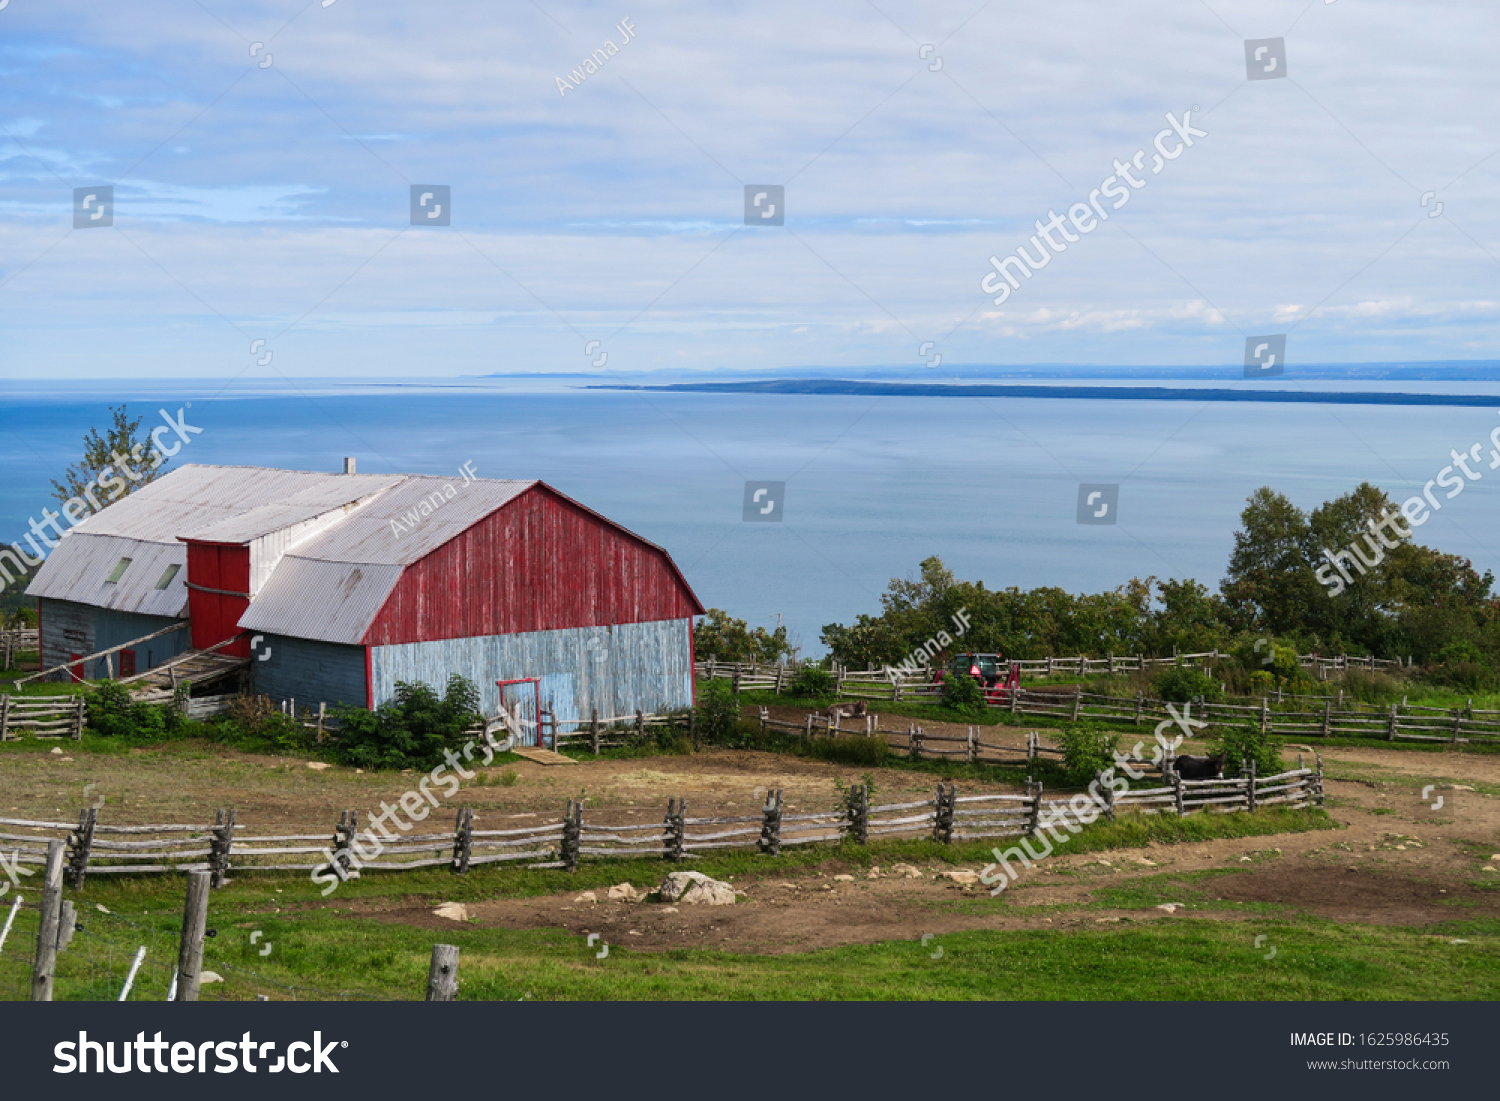 stock-photo-charlevoix-canada-september-